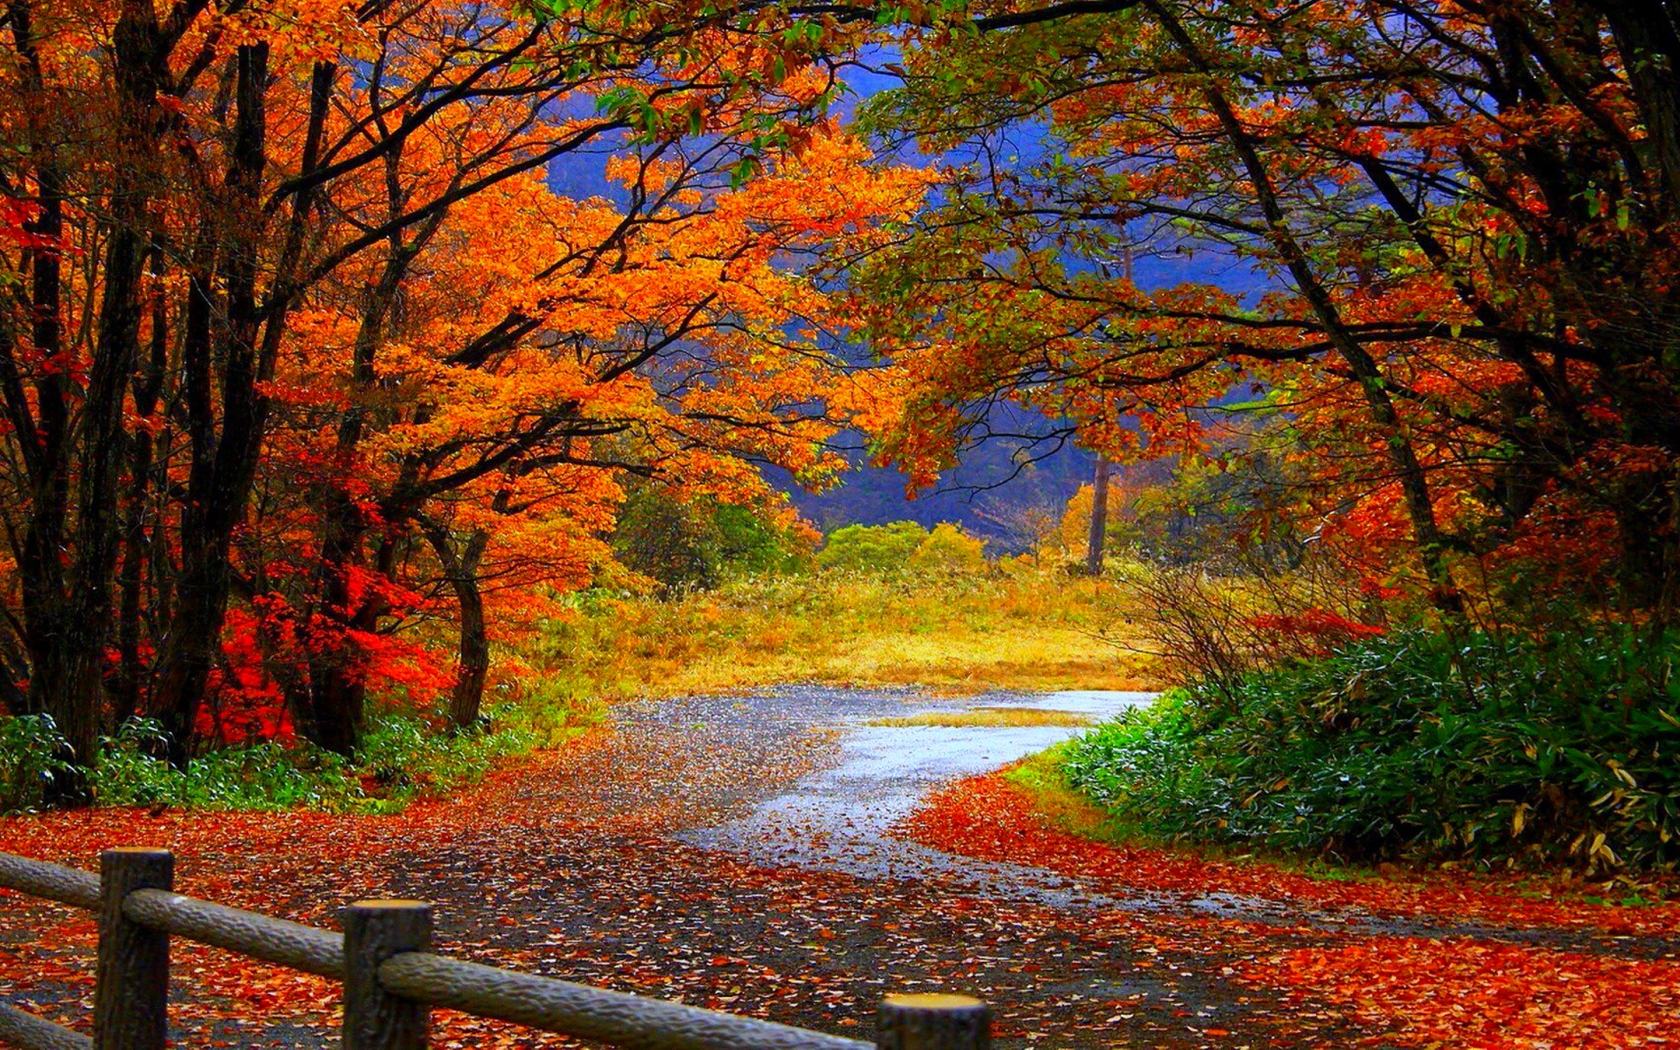 Fall wallpaper 1680x1050 36884 1680x1050